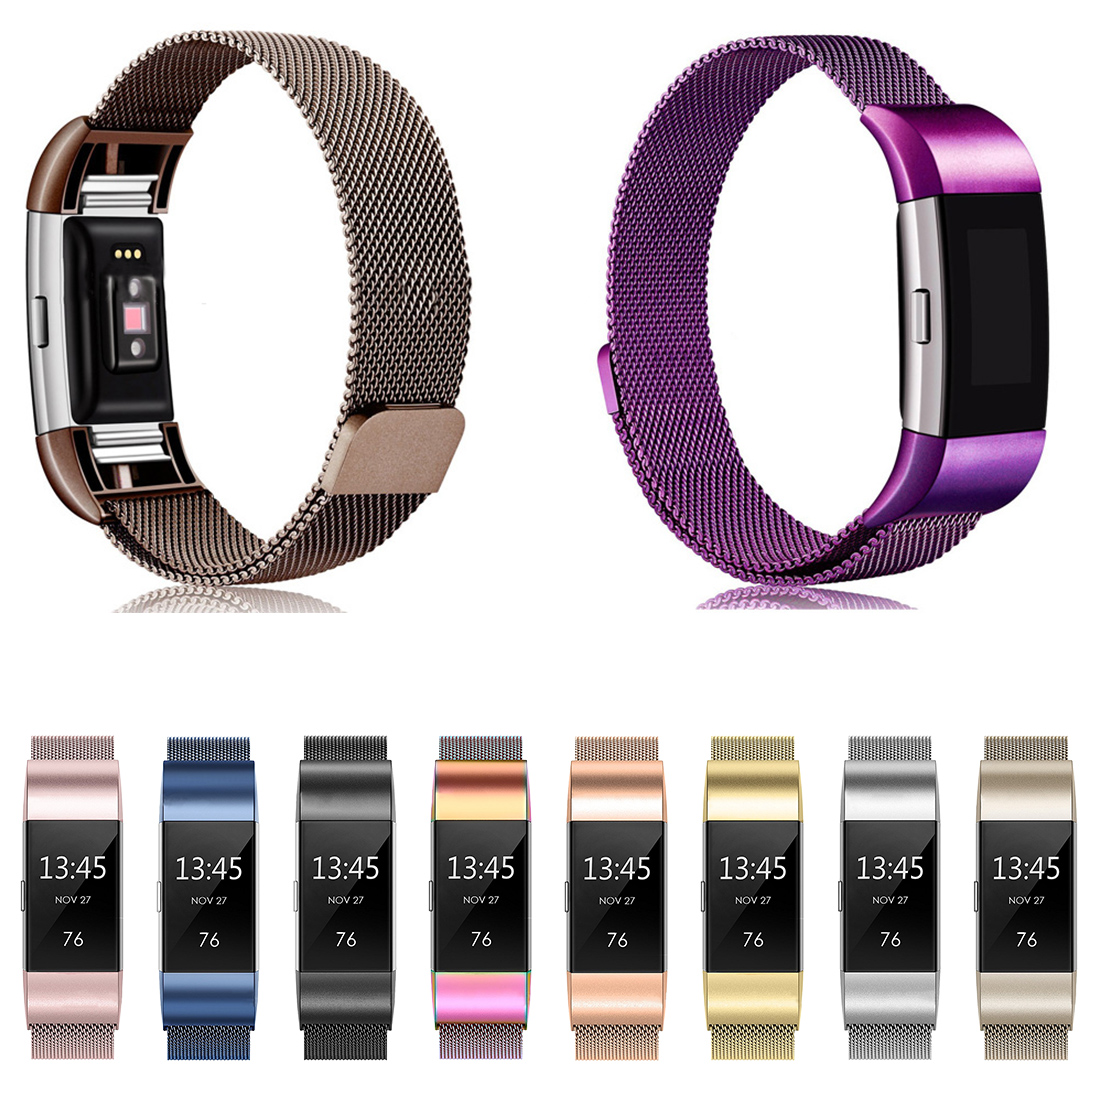 Centechia For Fitbit Charge 2 Hr Band Strap Replacement Wrist Bracelet Stainless Steel For Fit Bit Charge2 Smart Watch S L Size